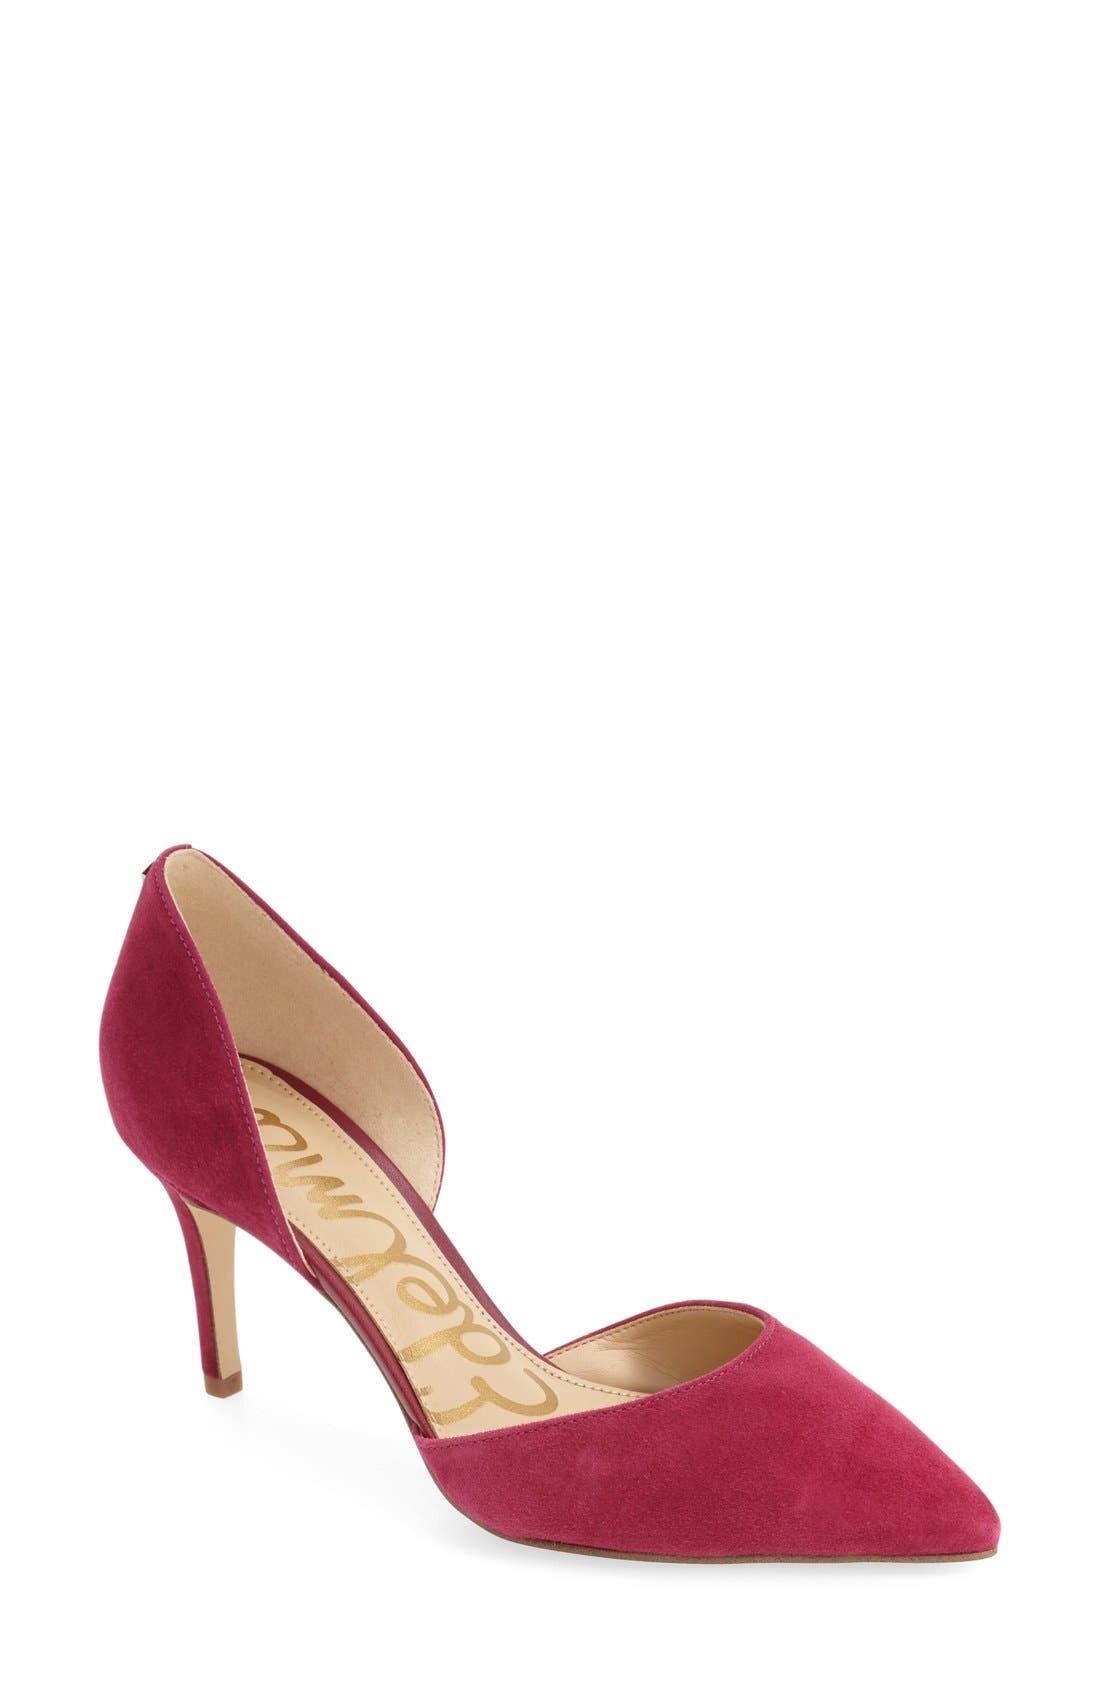 'Telsa' d'Orsay Pointy Toe Pump,                             Main thumbnail 14, color,